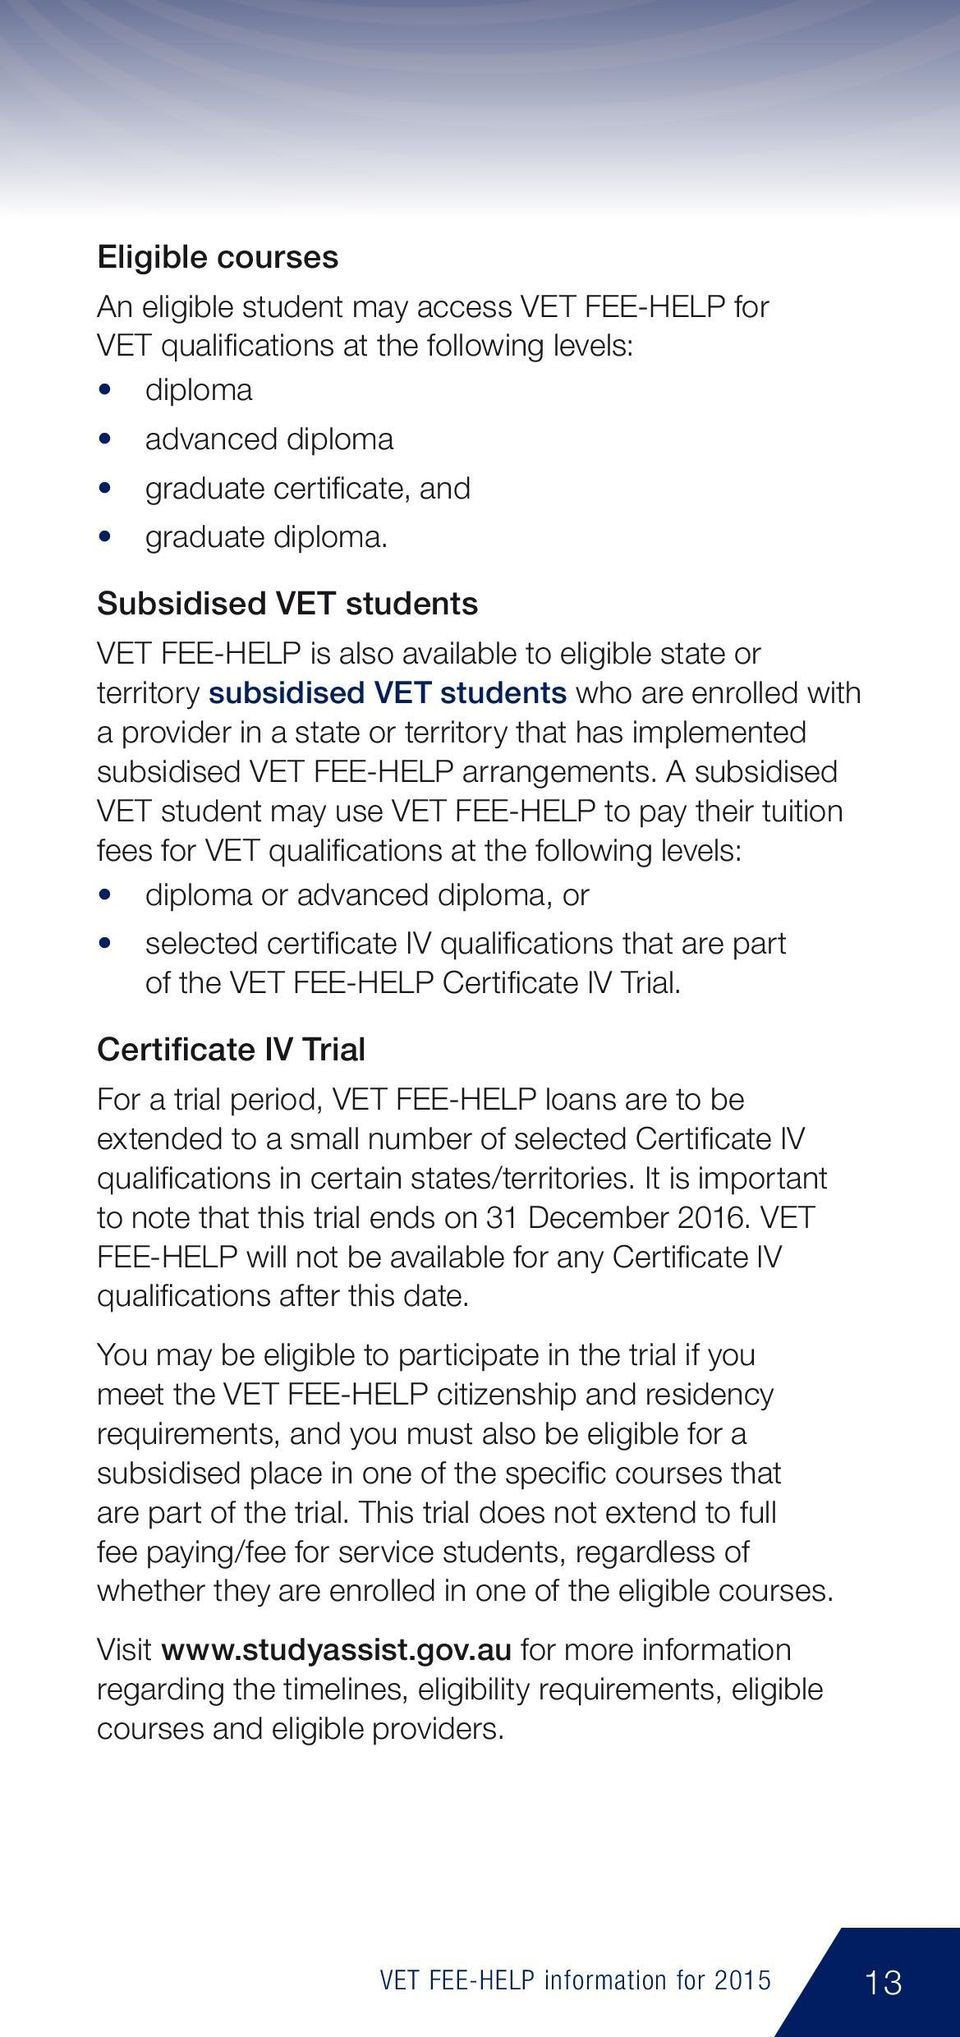 VET FEE-HELP arrangements.